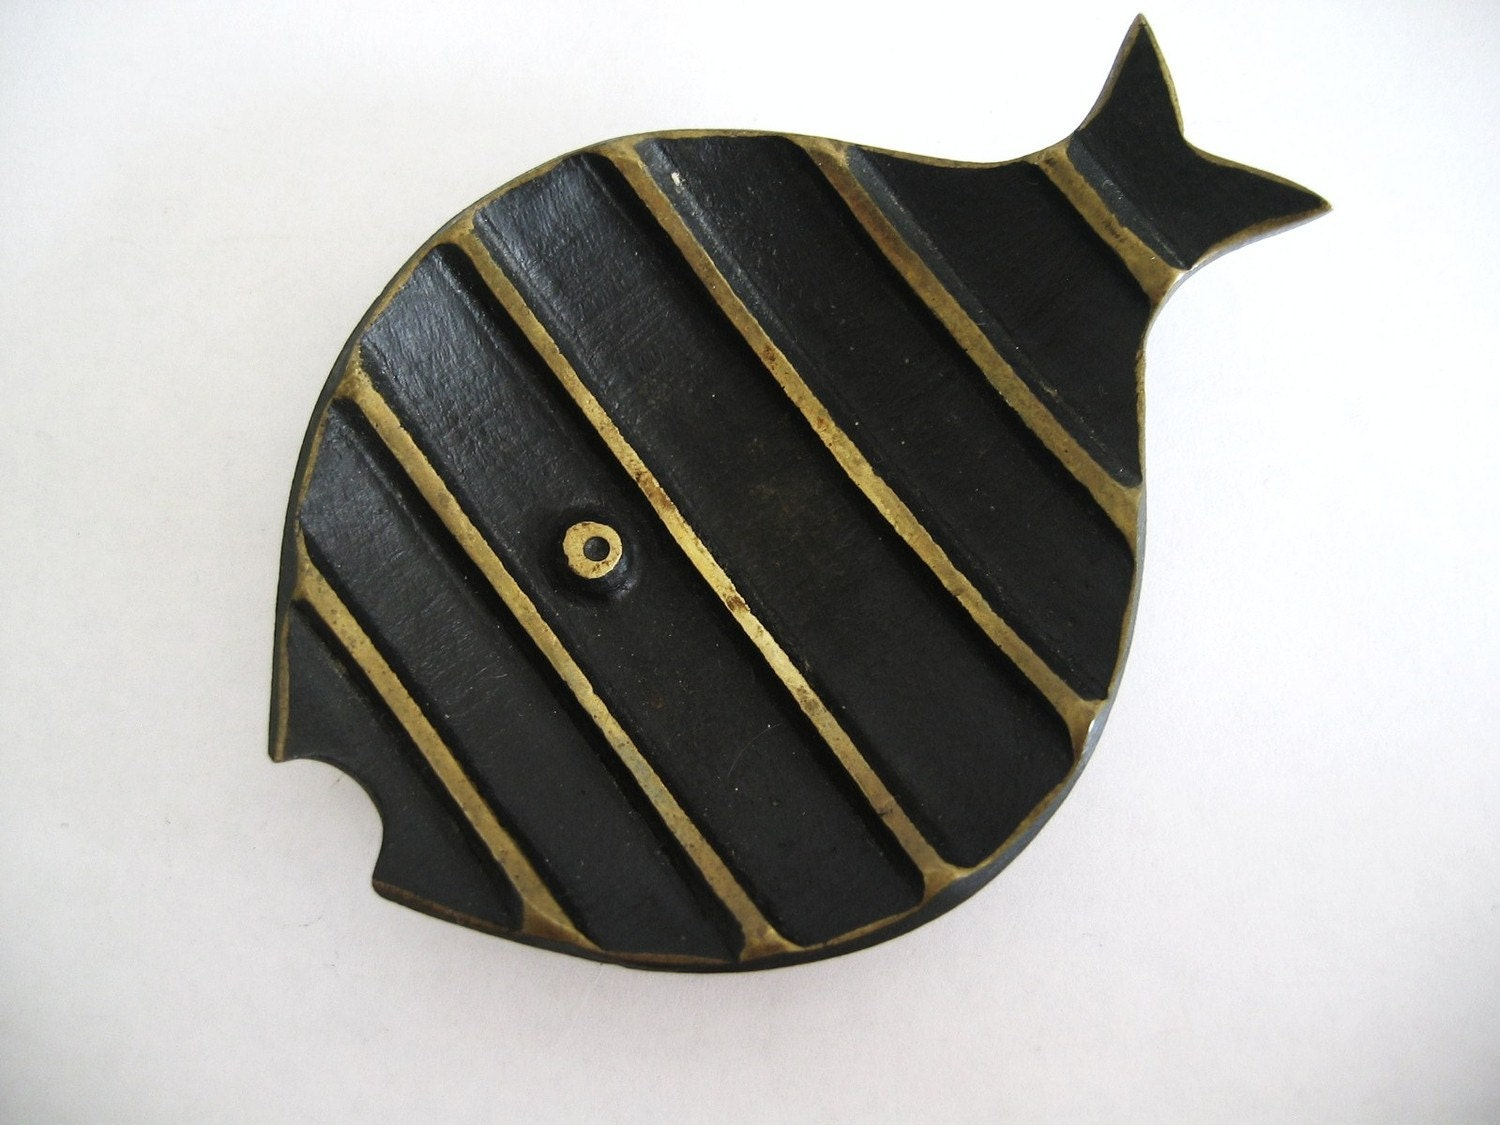 Vintage Modernist 50s Brass Walter Bosse Hagenauer Fish Ashtray Marked